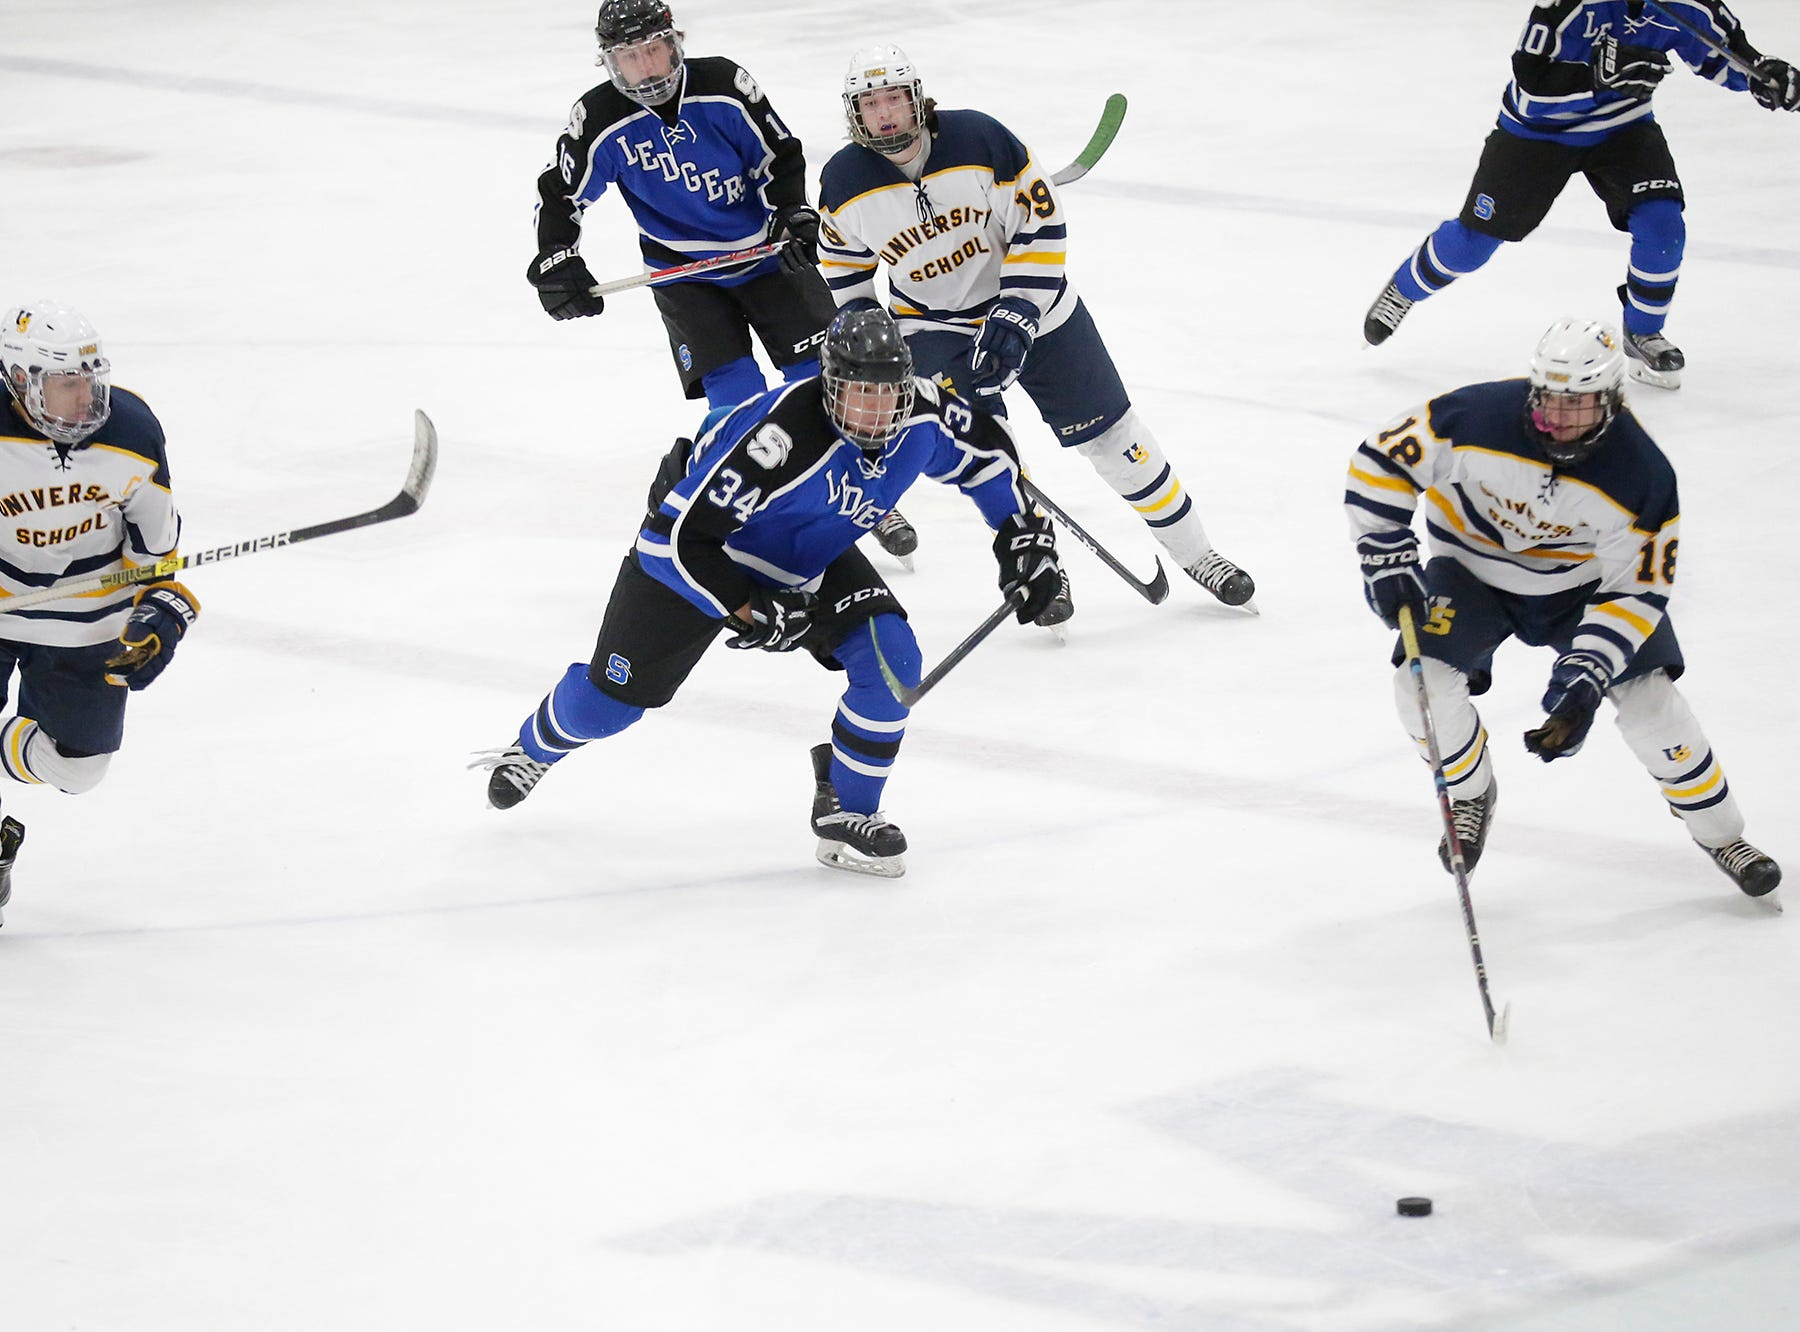 St. Mary's Springs boys co-op hockey's Cade Sabel (34) and University School of Milwaukee's Ethan Ford (10) and TJ Fenton (18) race to get the puck Friday, February 22, 2019 during their WIAA sectional final game in Fond du Lac. University School won the game 6-1 and will advance to state. Doug Raflik/USA TODAY NETWORK-Wisconsin